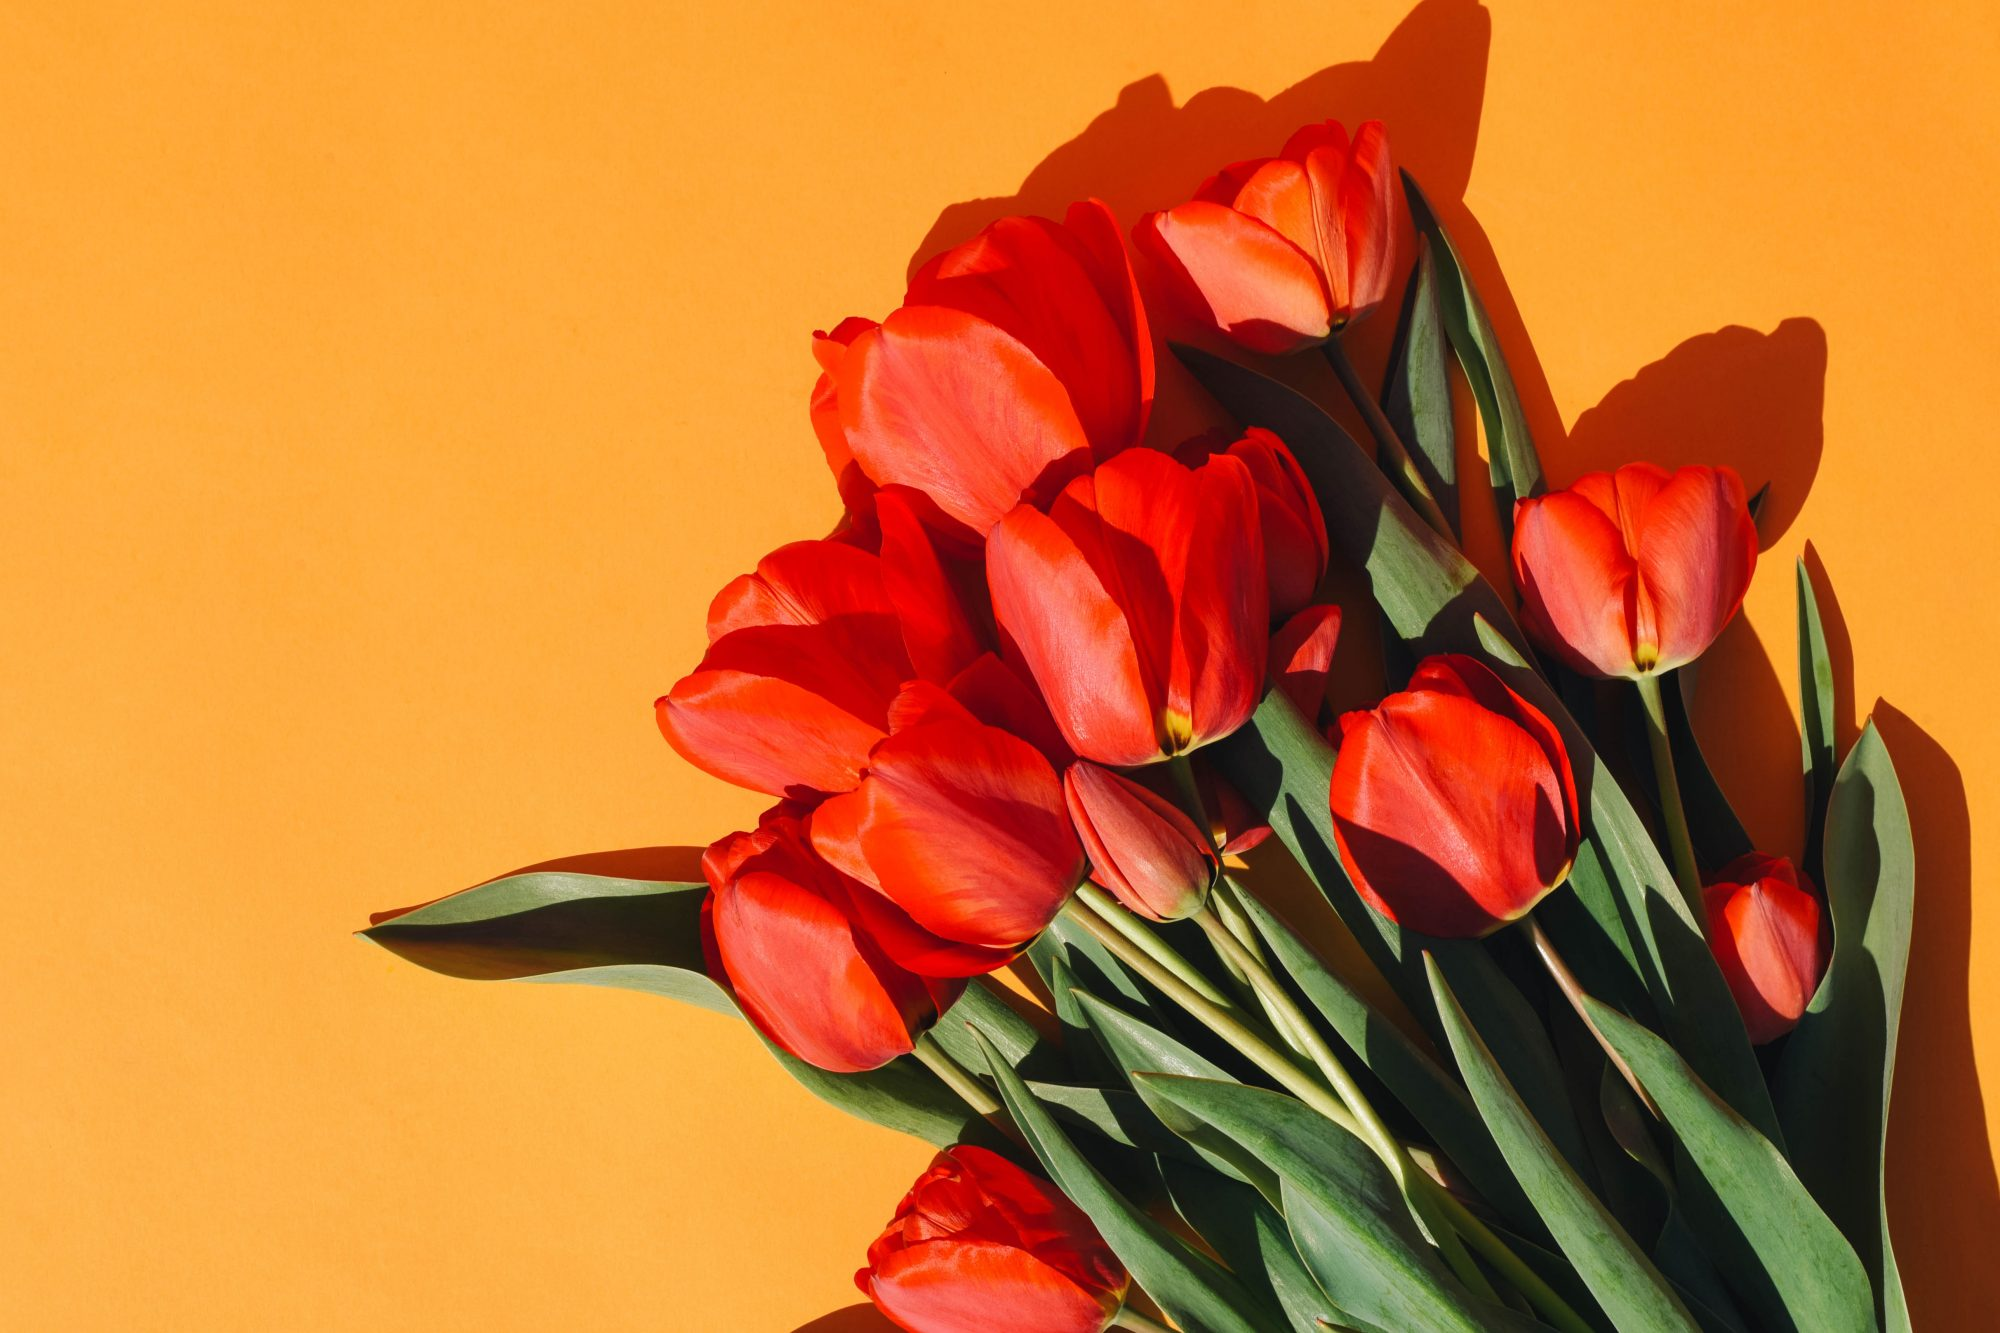 bouquet of red tulips on orange background